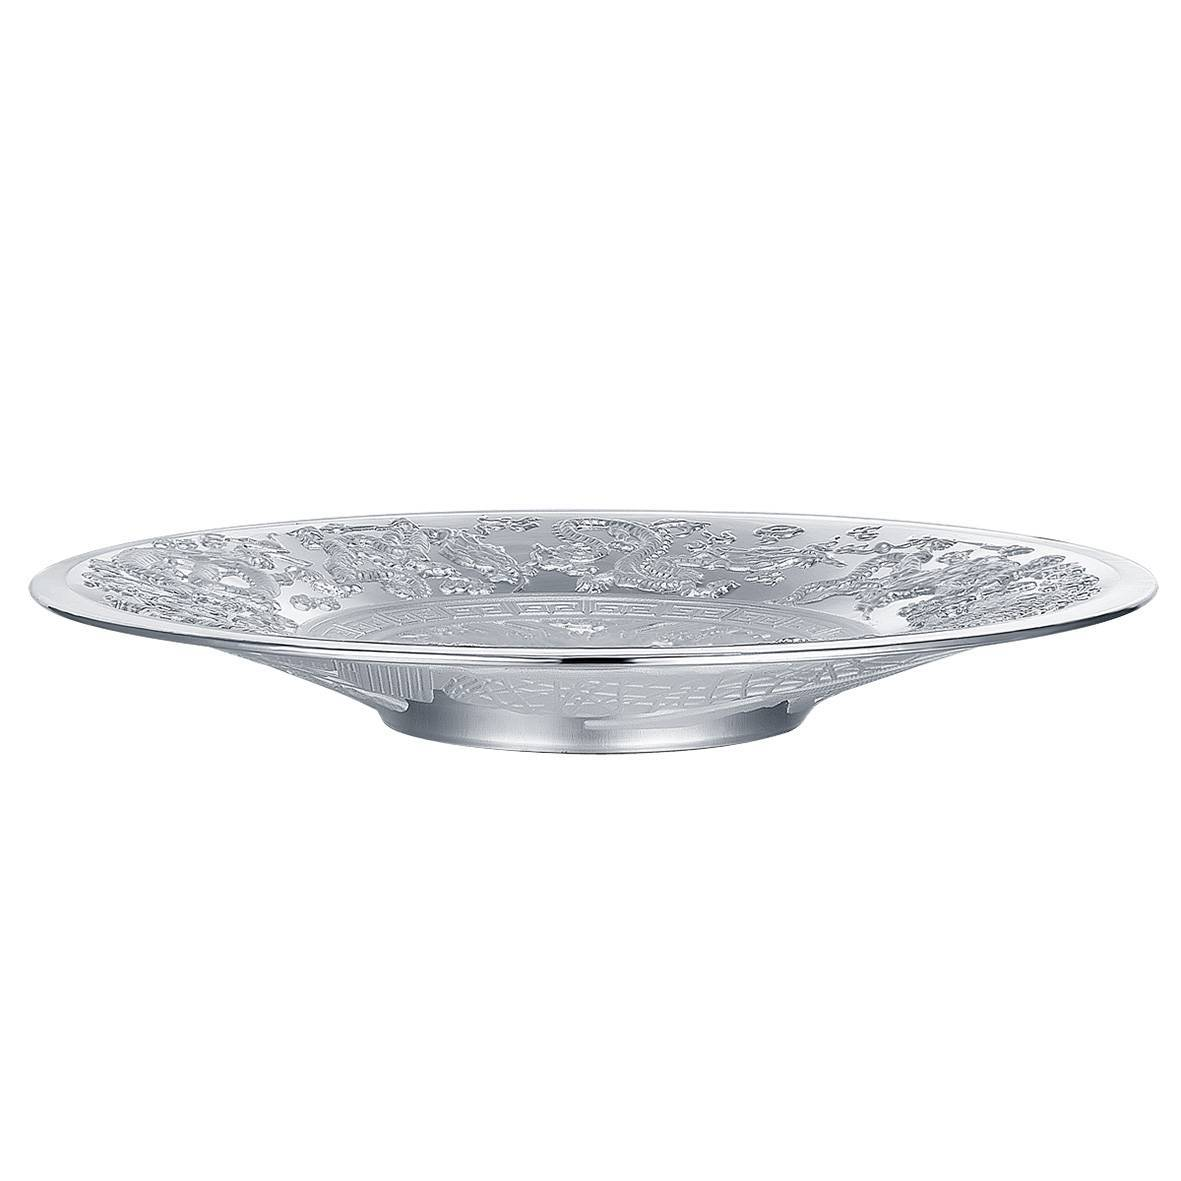 925 sterling silver saucer/plate for tableware